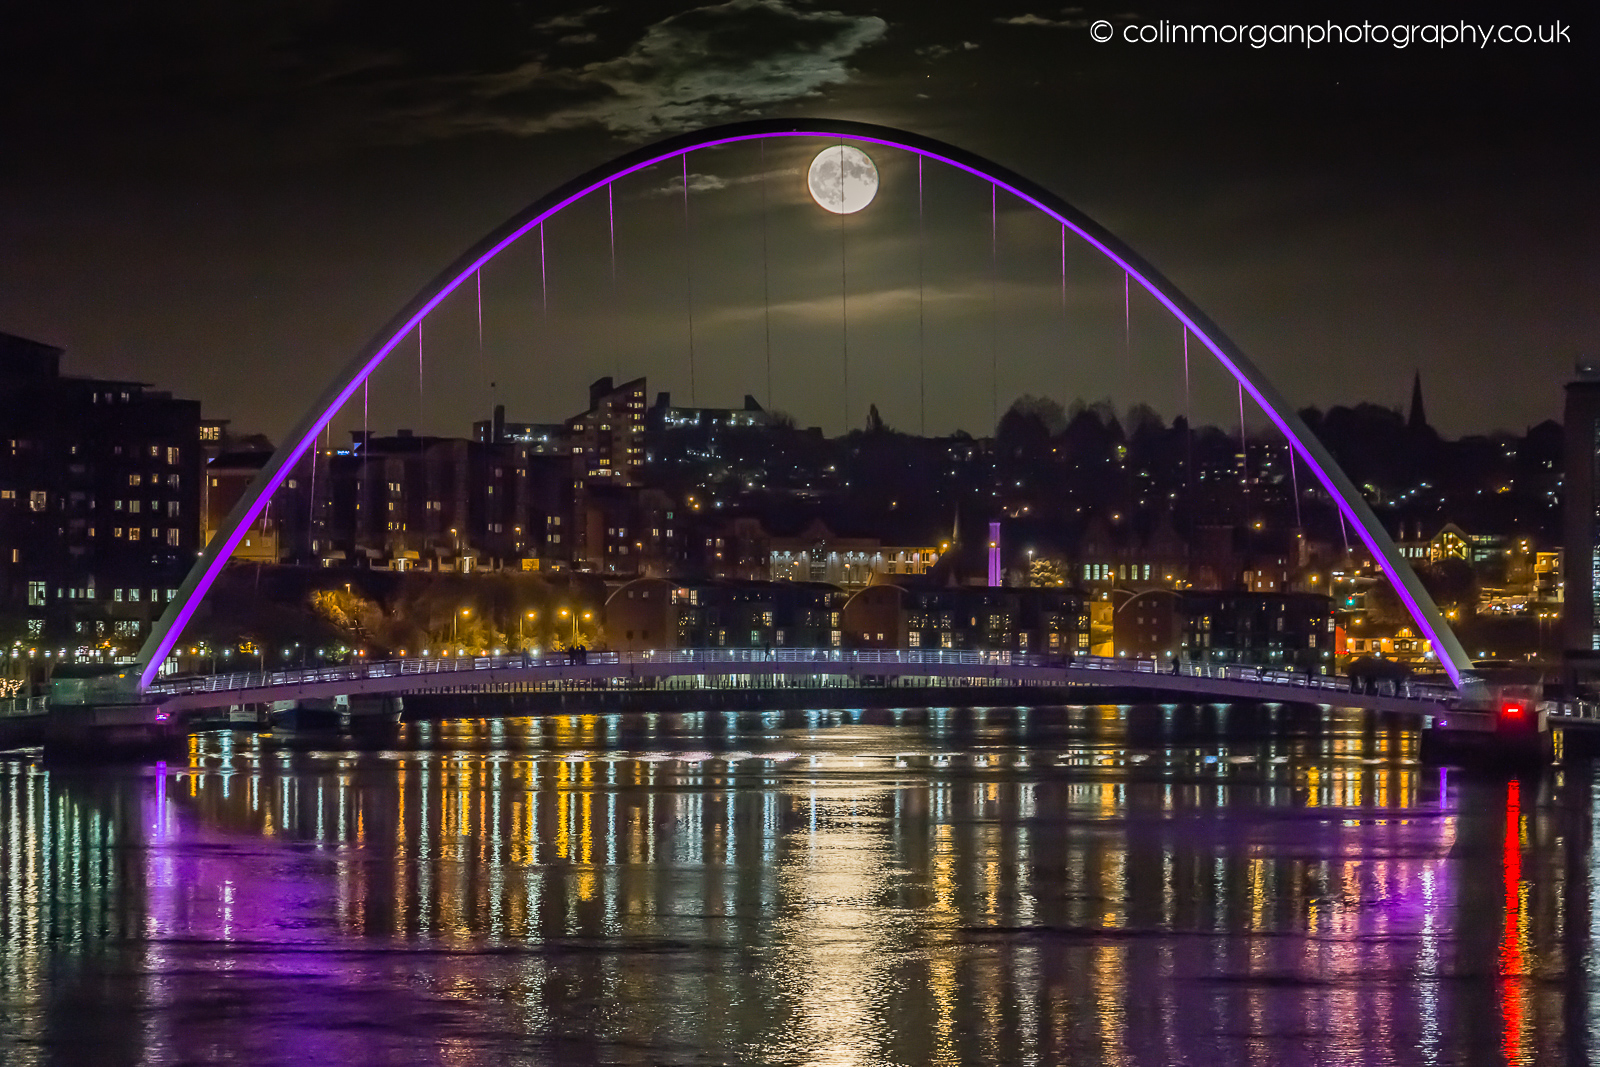 Full Moon on the Tyne